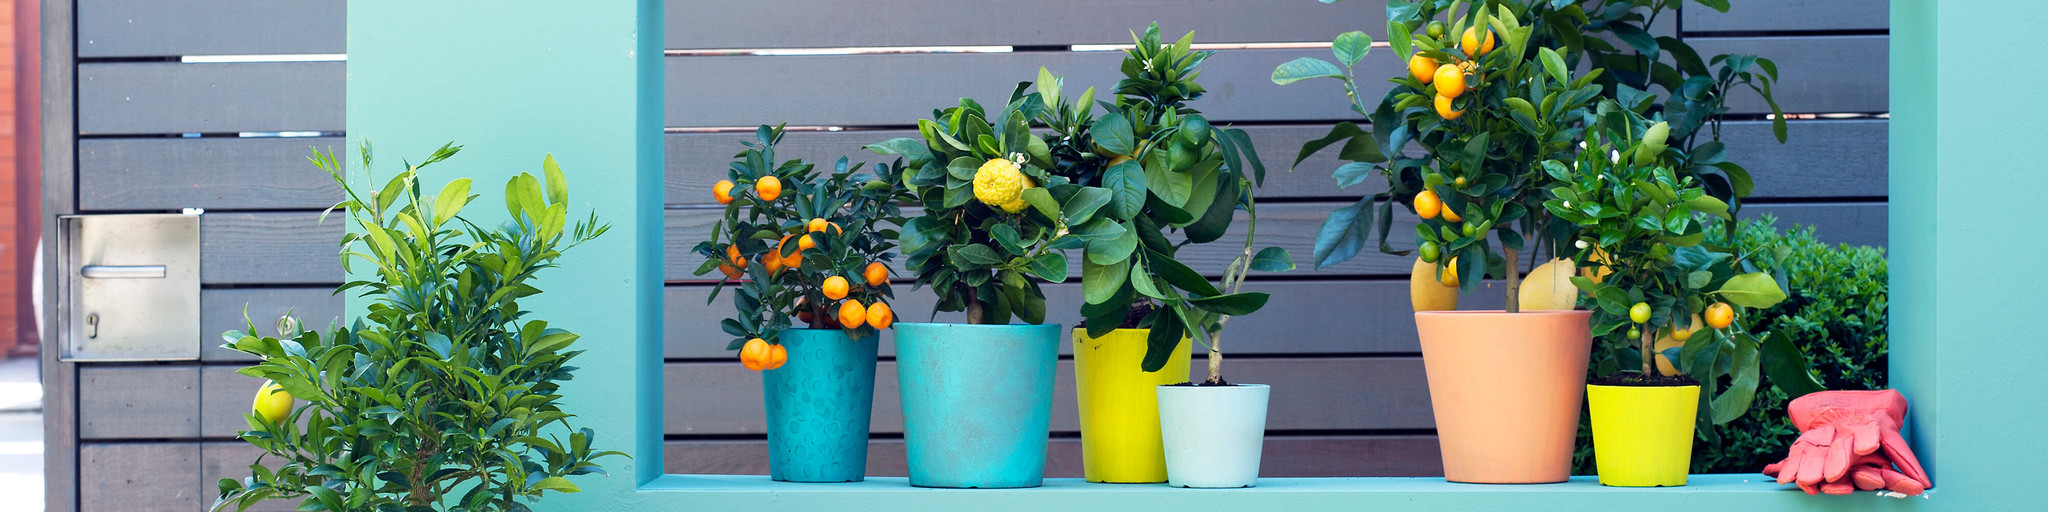 Buy best quality plants online! banner 3